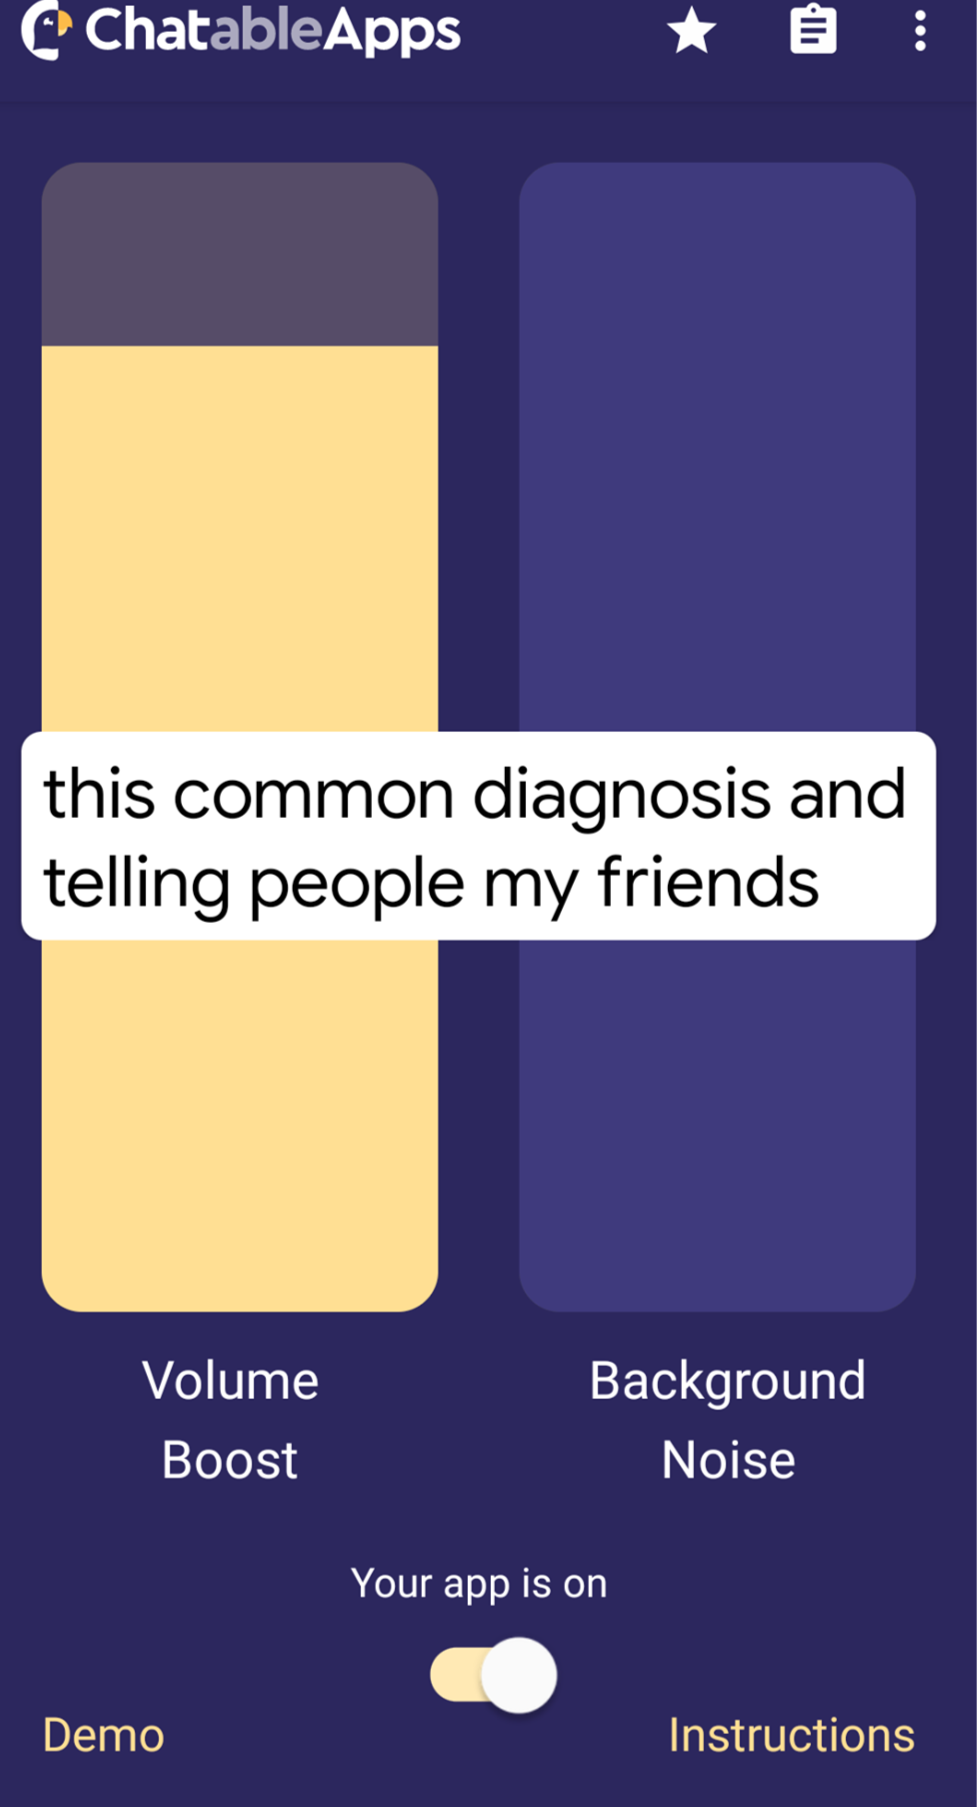 A screenshot of the app. An image of the Chatable App. It has a purple background with two tall rectangular shapes, the left is a yellow/beige, the one on the right is a lighter shade of purple. Underneath the left shape is white writing that reads 'volume boost' and under the right image reads 'backfround noise'. There is switch to turn the app on and at the bottom left corner in yellow reads 'demo' and the bottom right reads 'instructions'. Across the screen is a white box with black writing that reads 'this common diagnosis and telling people my friends'